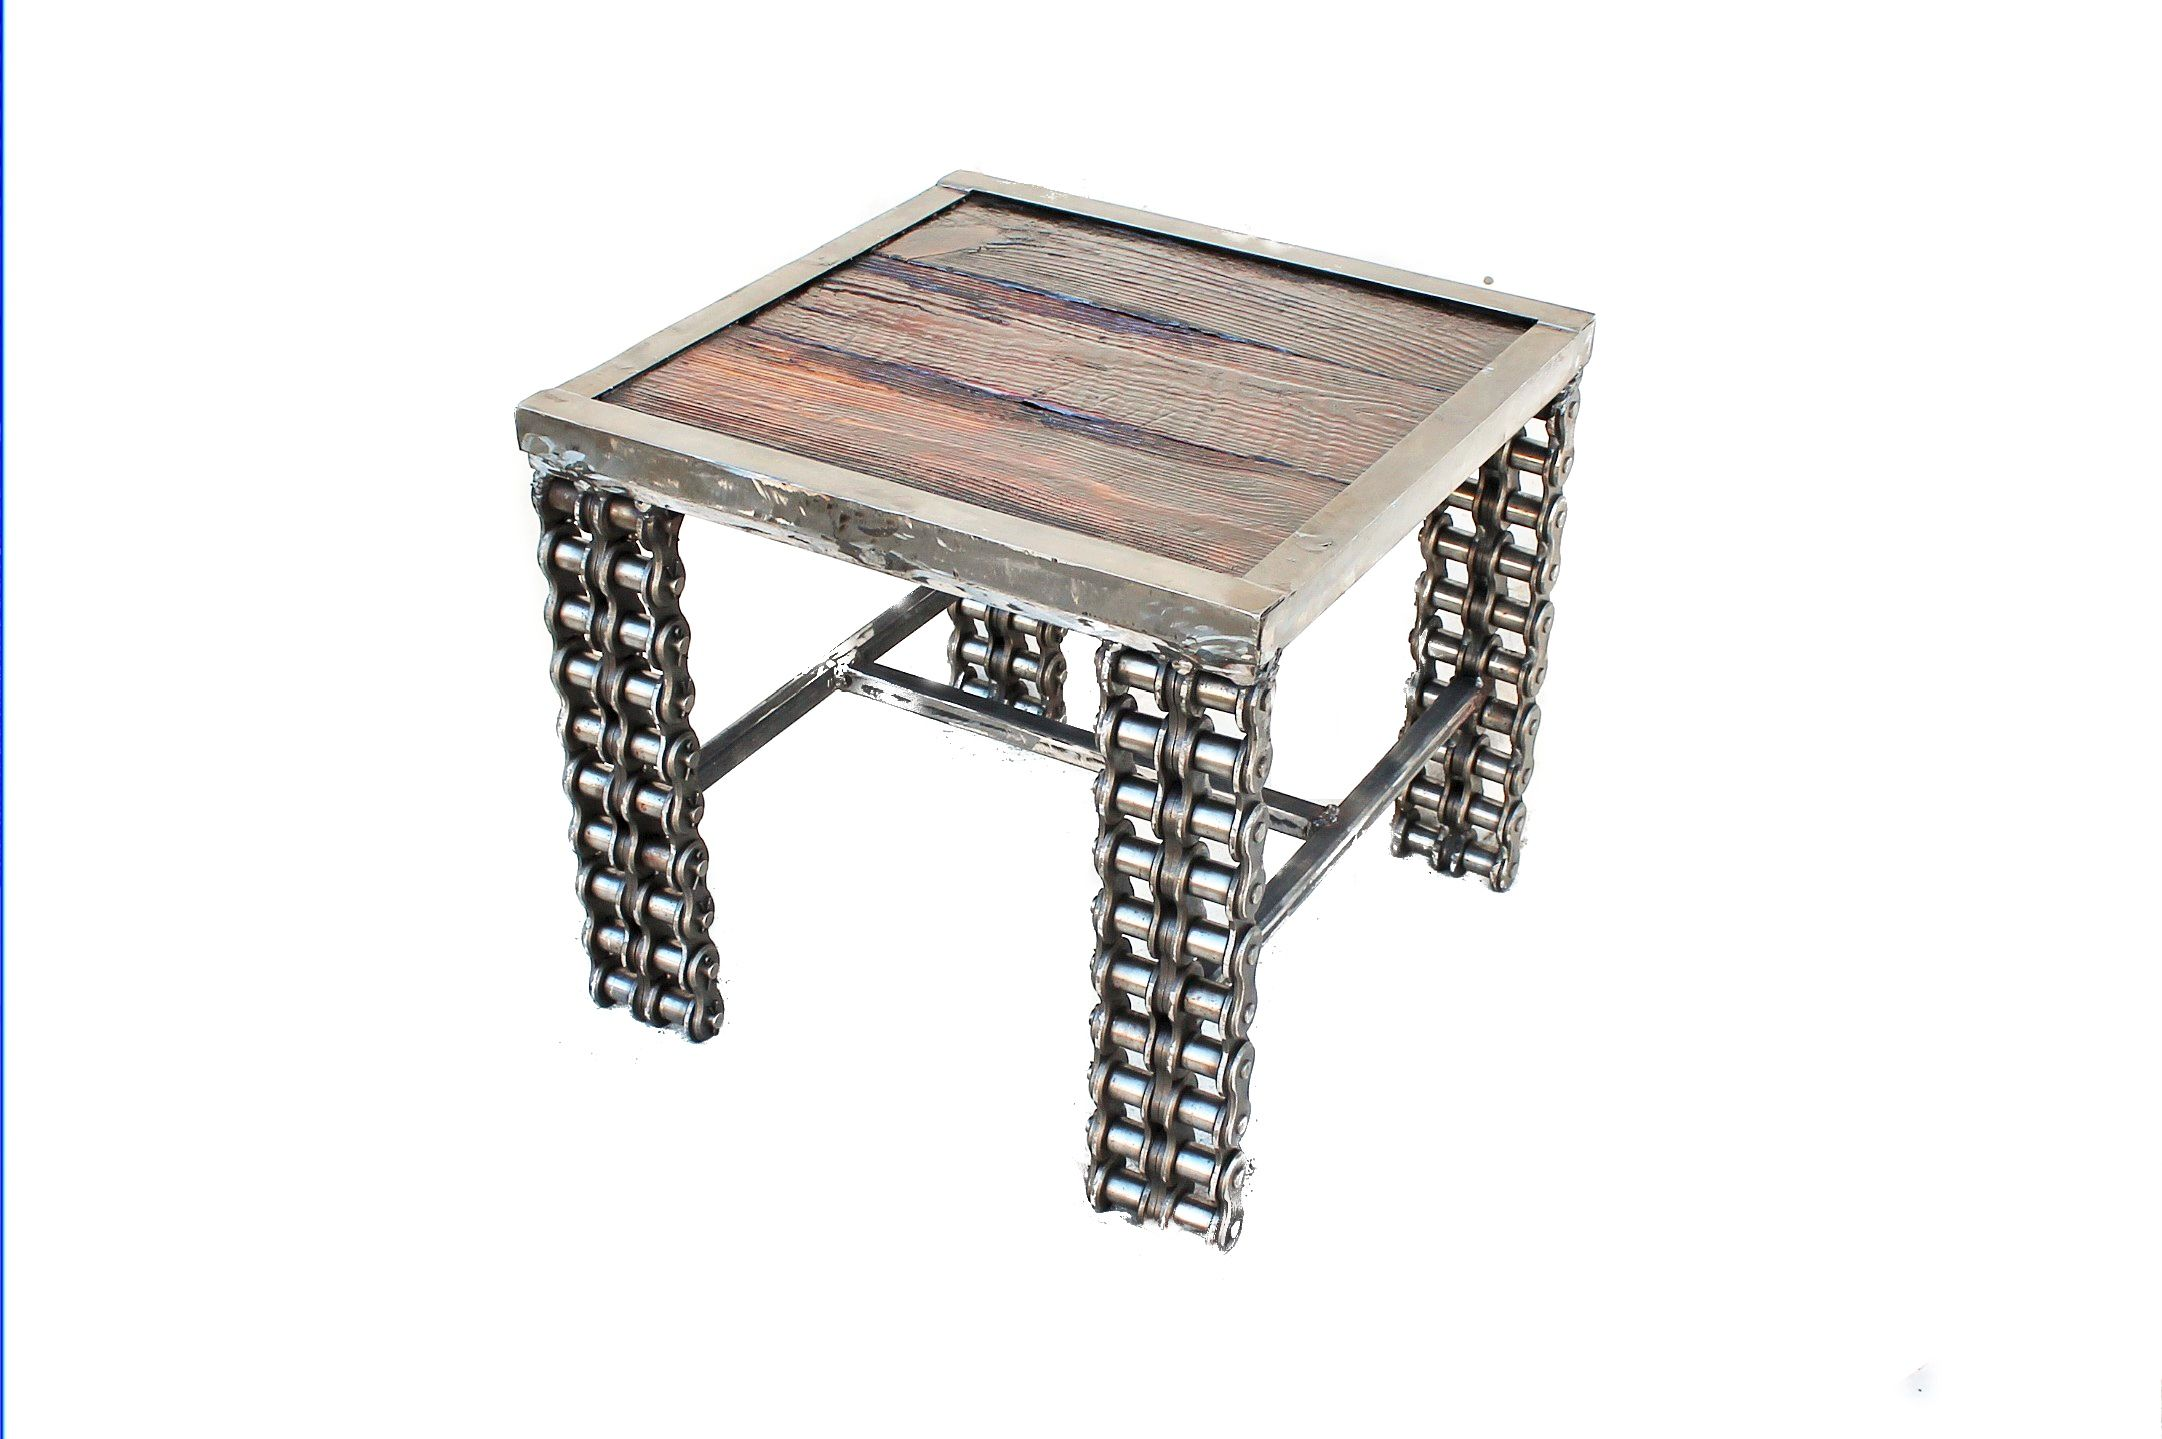 Buy A Hand Crafted Farmhouse Style Rustic Reclaimed Wood